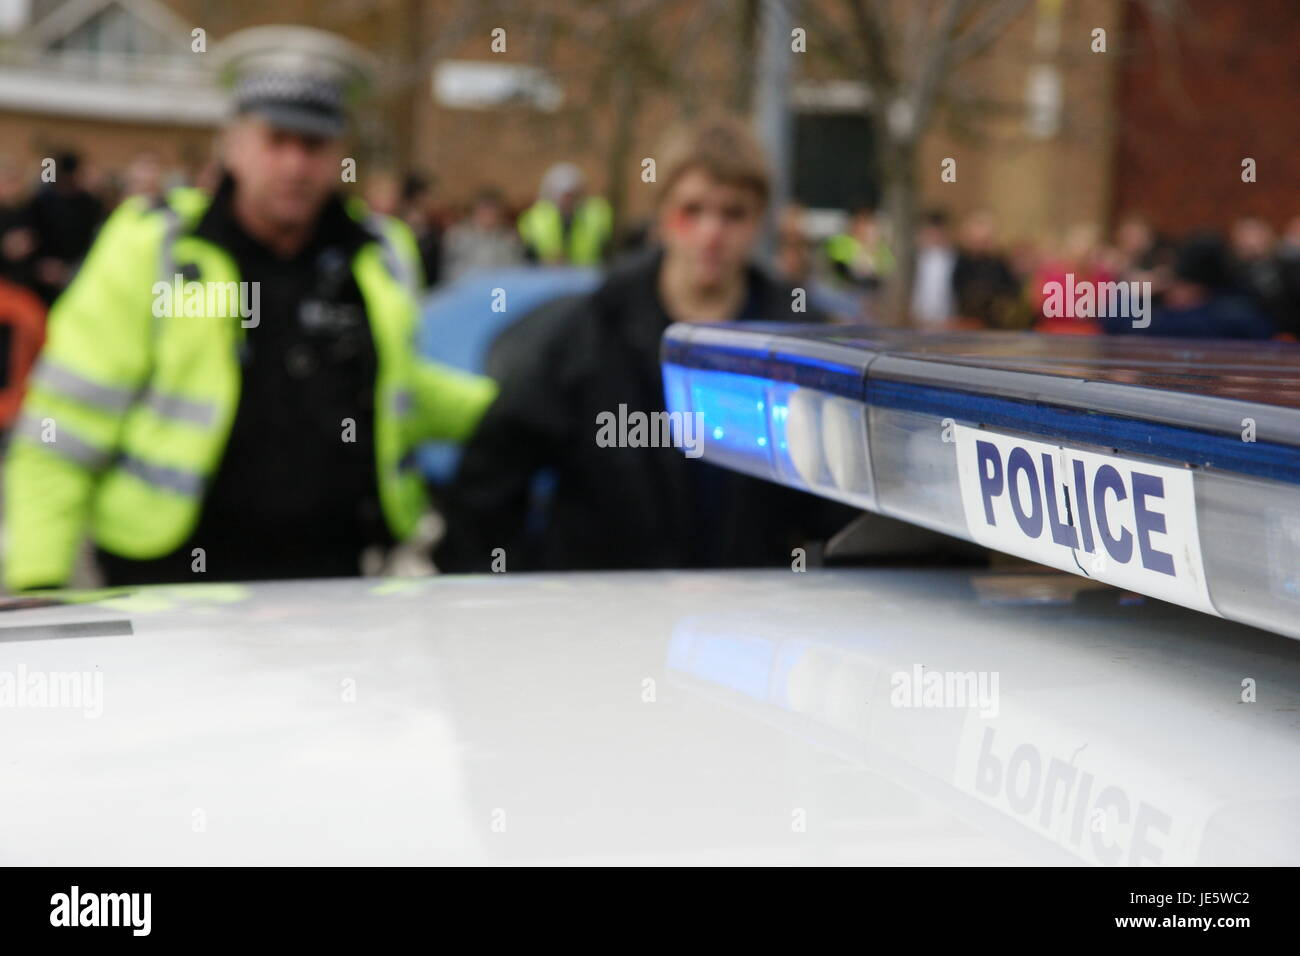 police dealing with public disorder, knife crime, teenager with knife - Stock Image